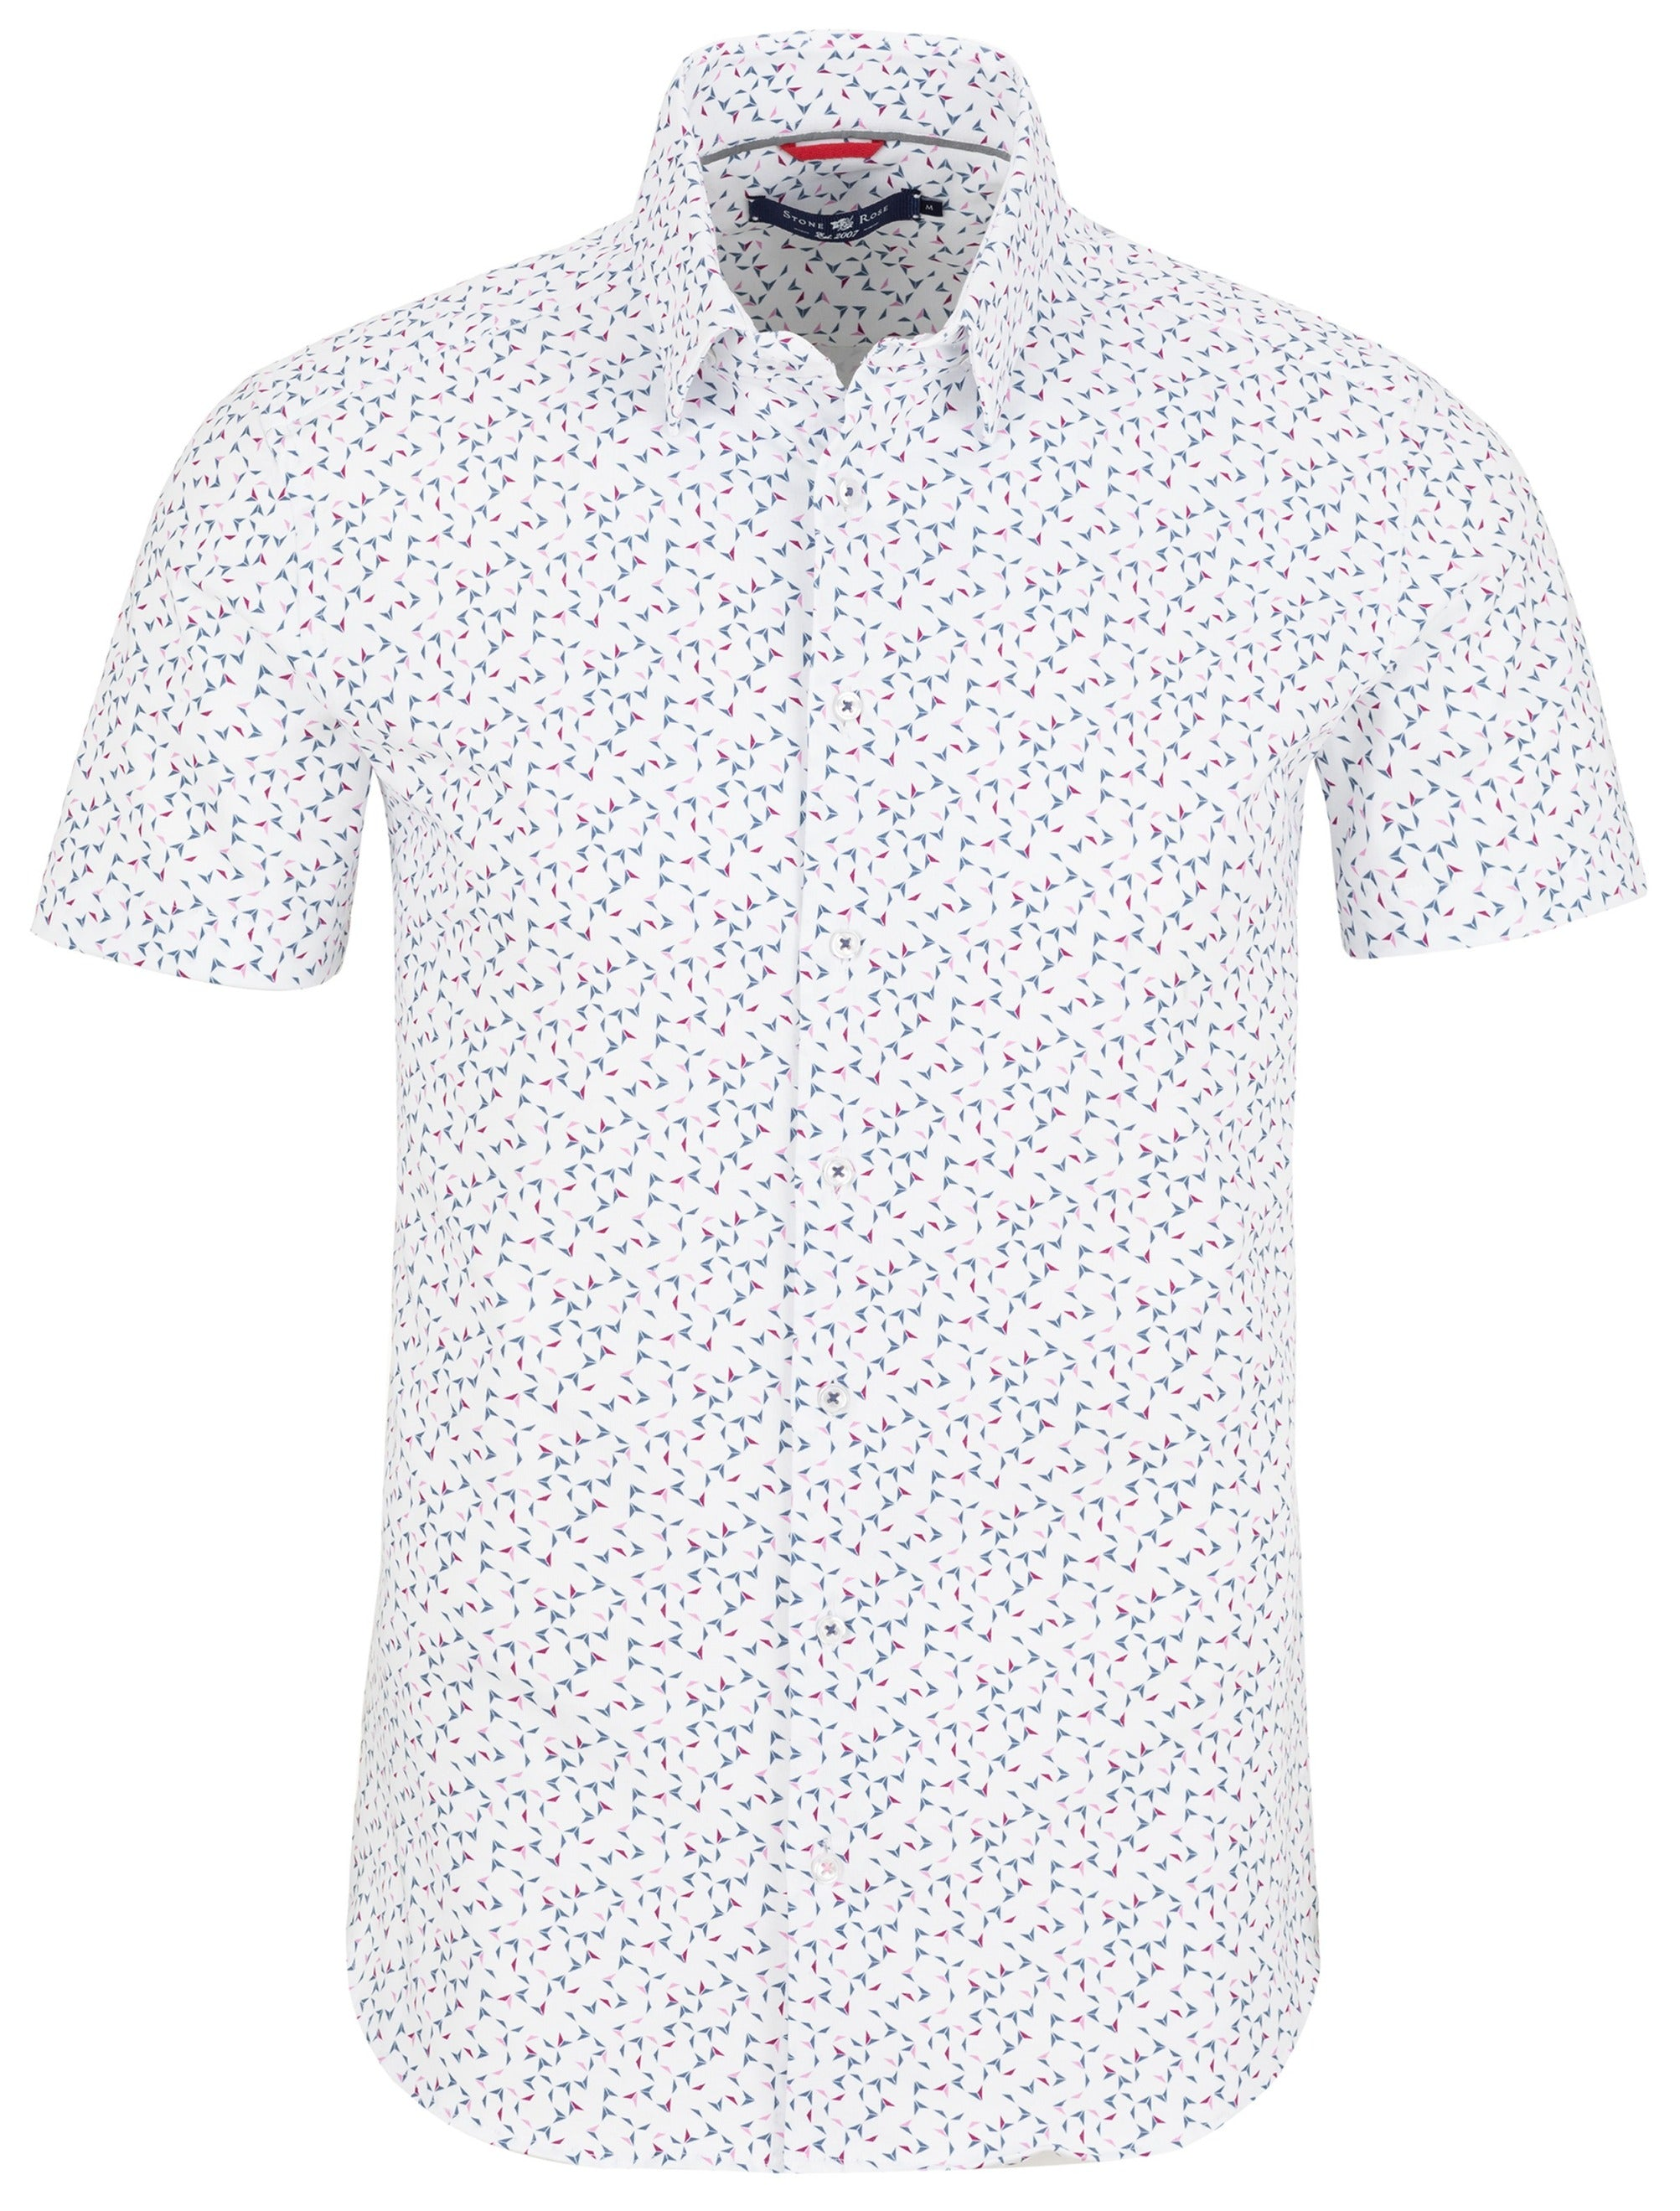 White Novelty T-Series Knit Short Sleeve Shirt